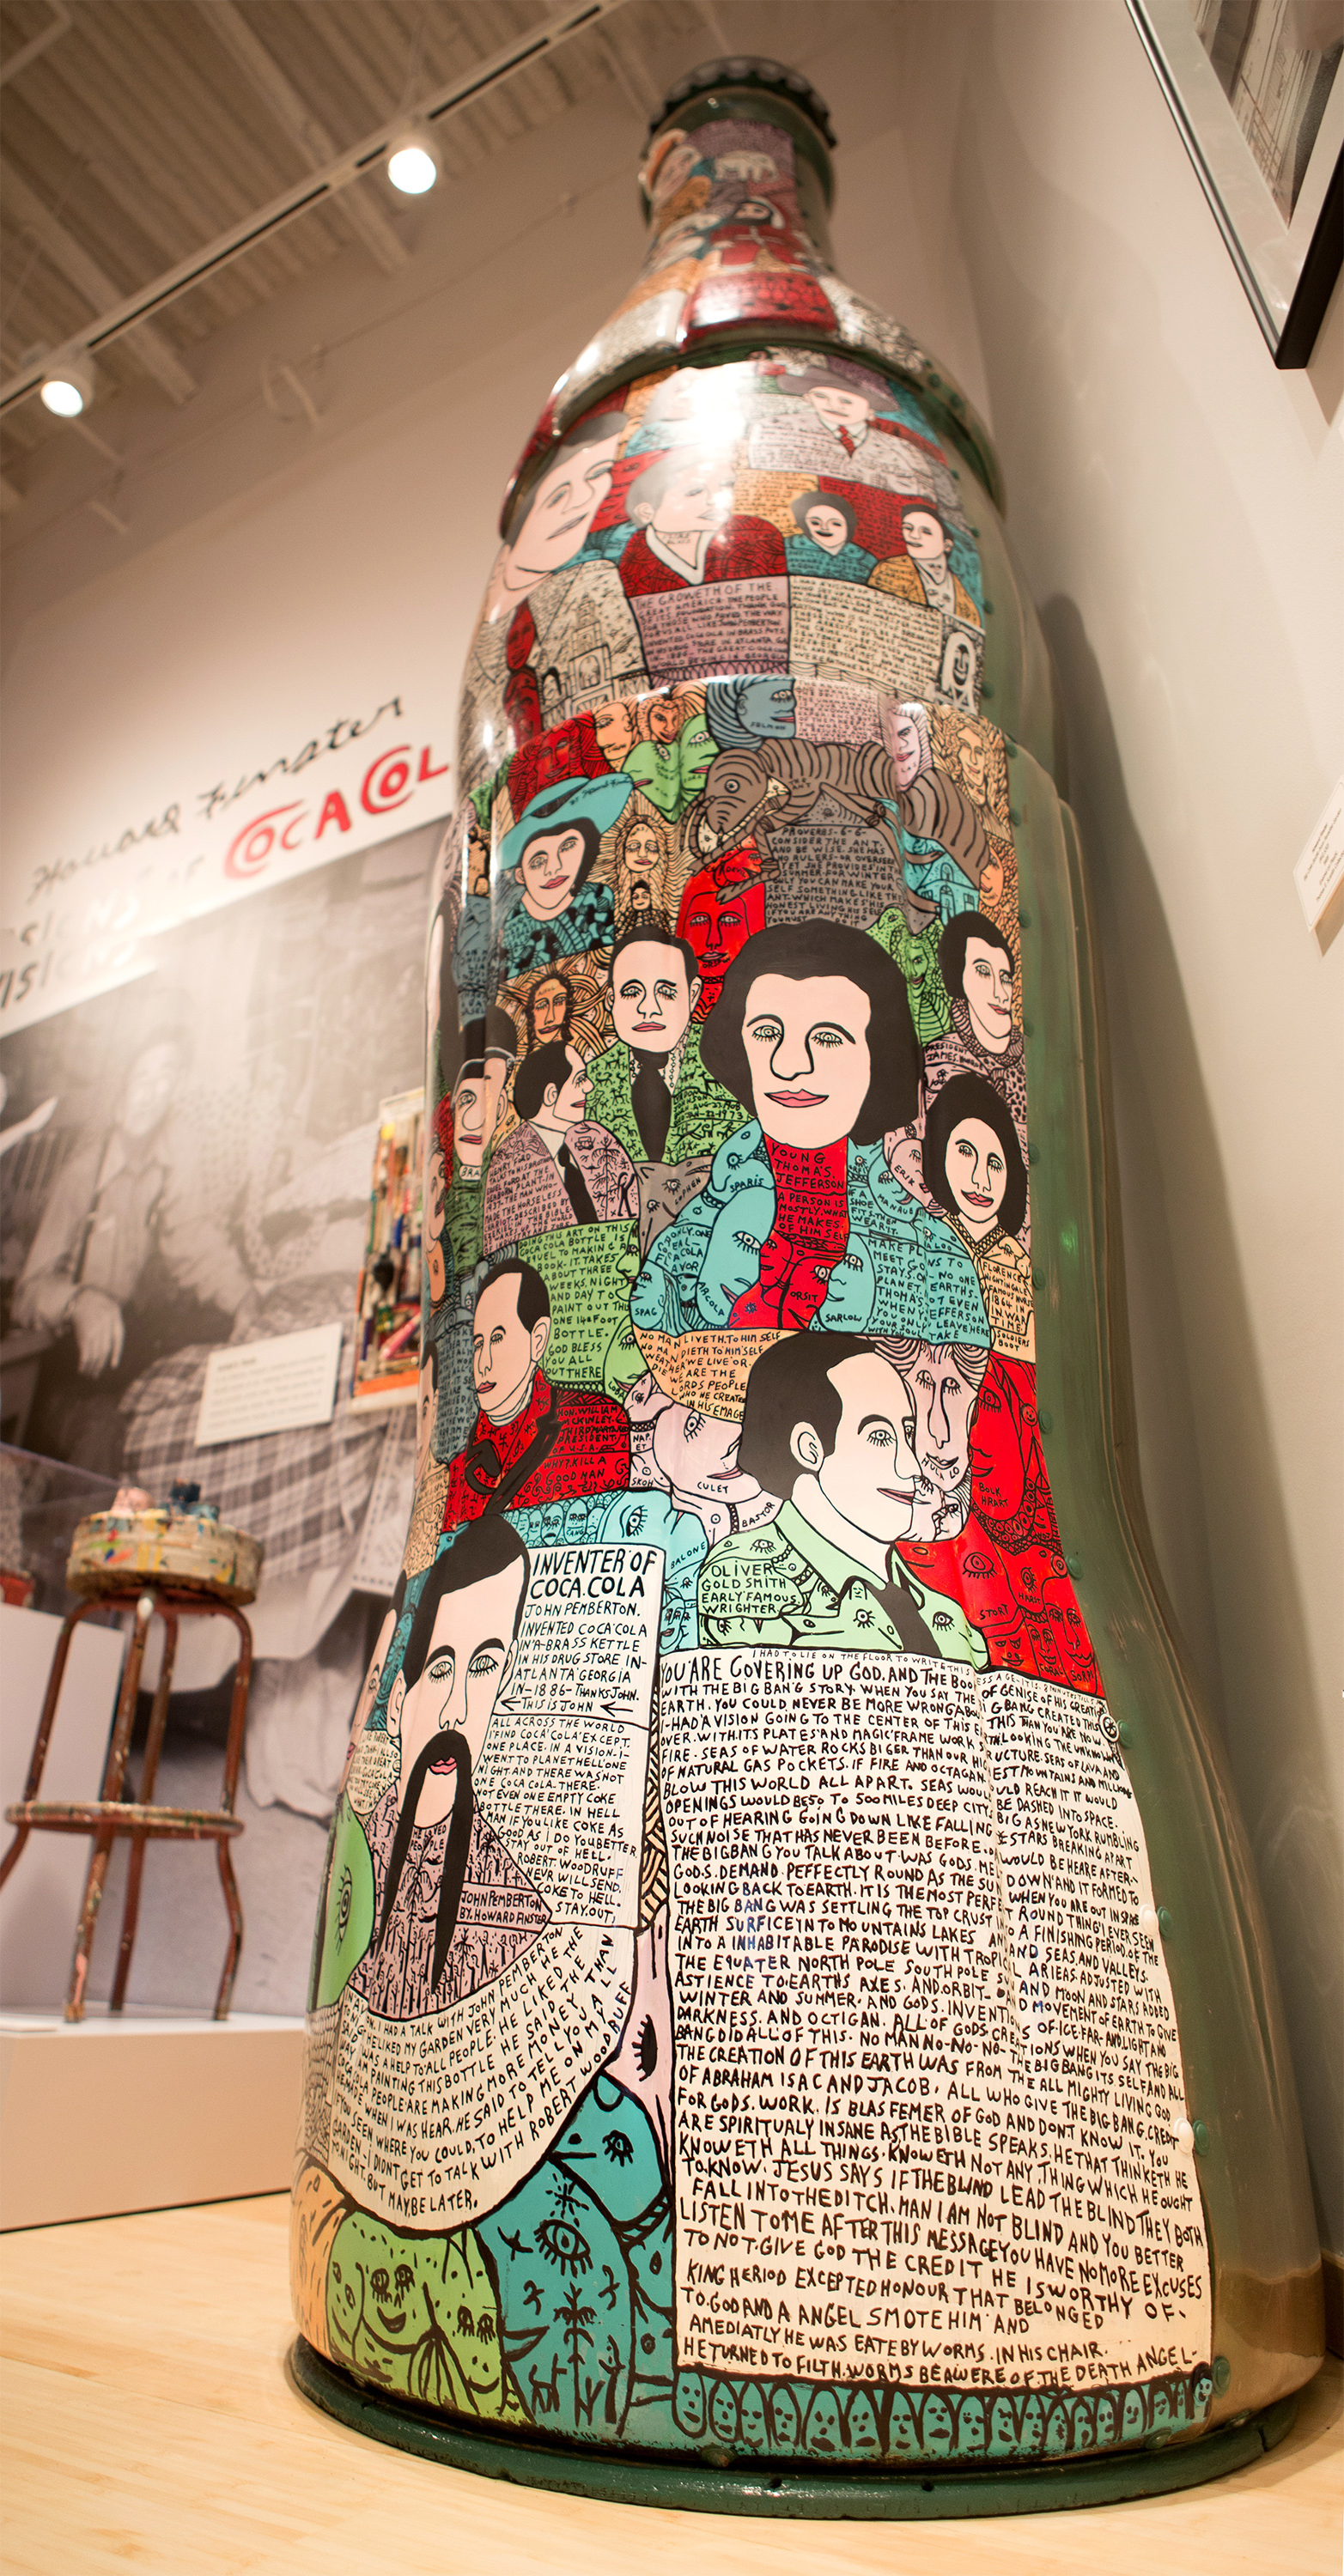 """This 13-foot-tall Coca-Cola bottle is a work of folk art and one of the newest additions to the Pop Culture gallery at the World of Coca-Cola in Atlanta. The exhibit, Howard Finster: Visions of Coca-Cola, opens today, featuring work by the self-taught artist and Baptist minister from Georgia. In this image, Finster used his one-of-a-kind style to depict historical figures on a bottle """"big enough for man to stand in."""" This exhibit is part of the World of Coca-Cola's kickoff to summer, which includes a new short film, a new mobile app and a special ticket offer in celebration of its seventh anniversary. (Photo: Business Wire)"""